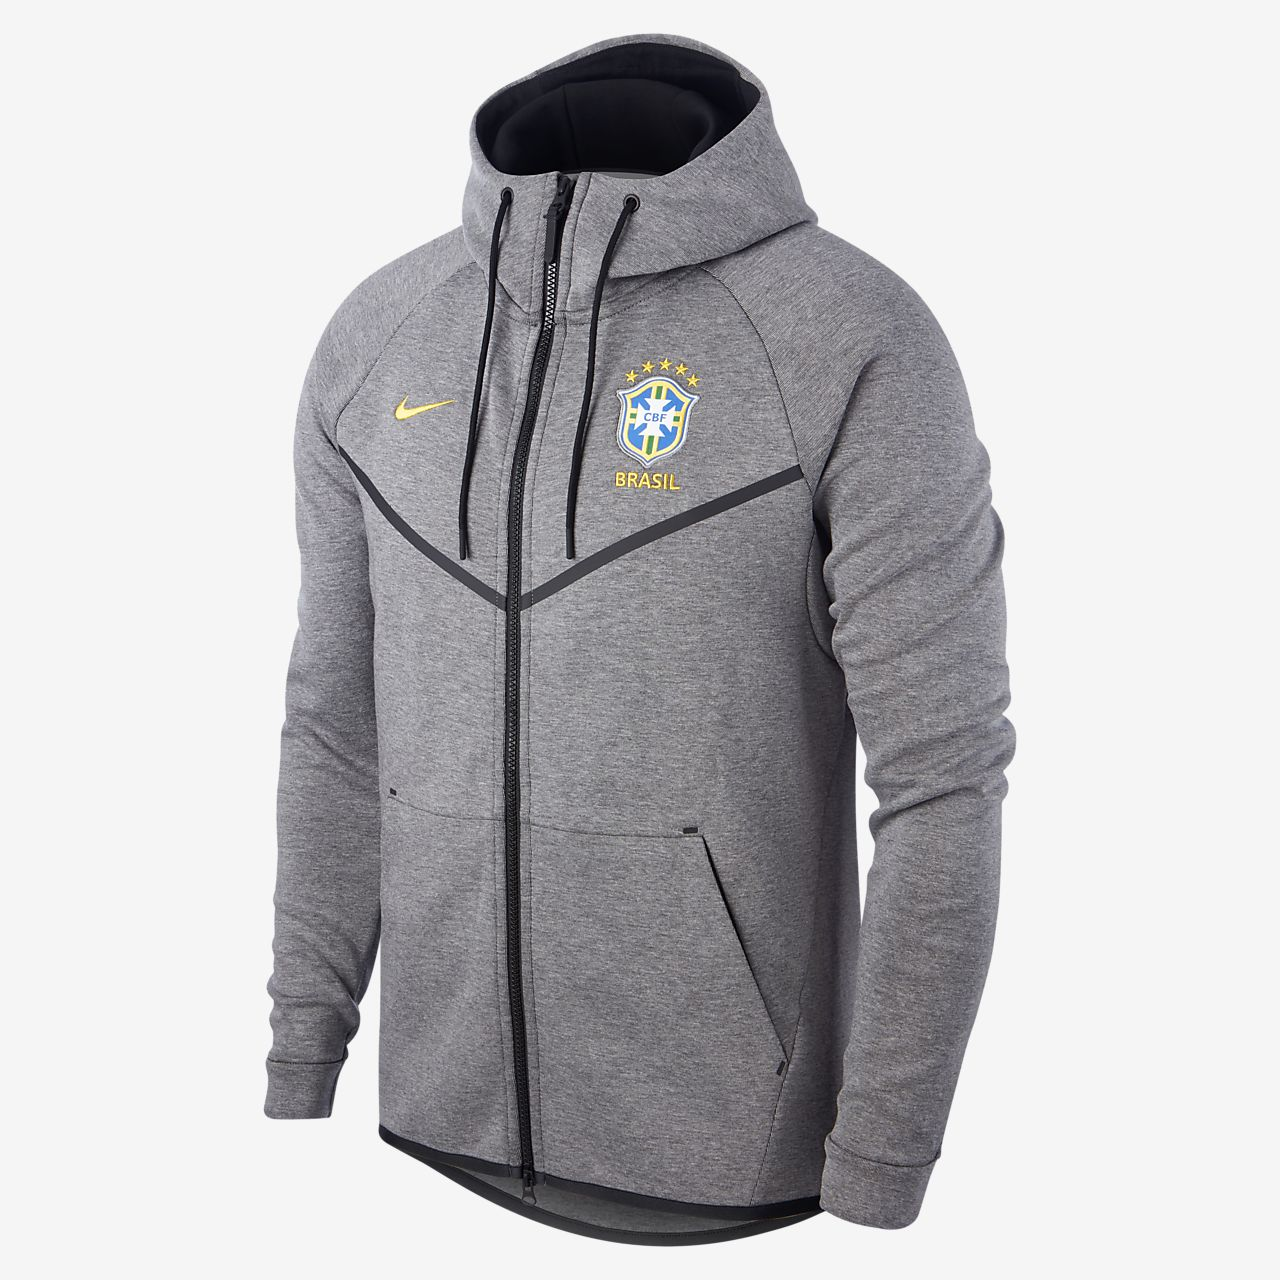 new style 8bb1d 1ff87 ... Veste Brasil CBF Tech Fleece Windrunner pour Homme